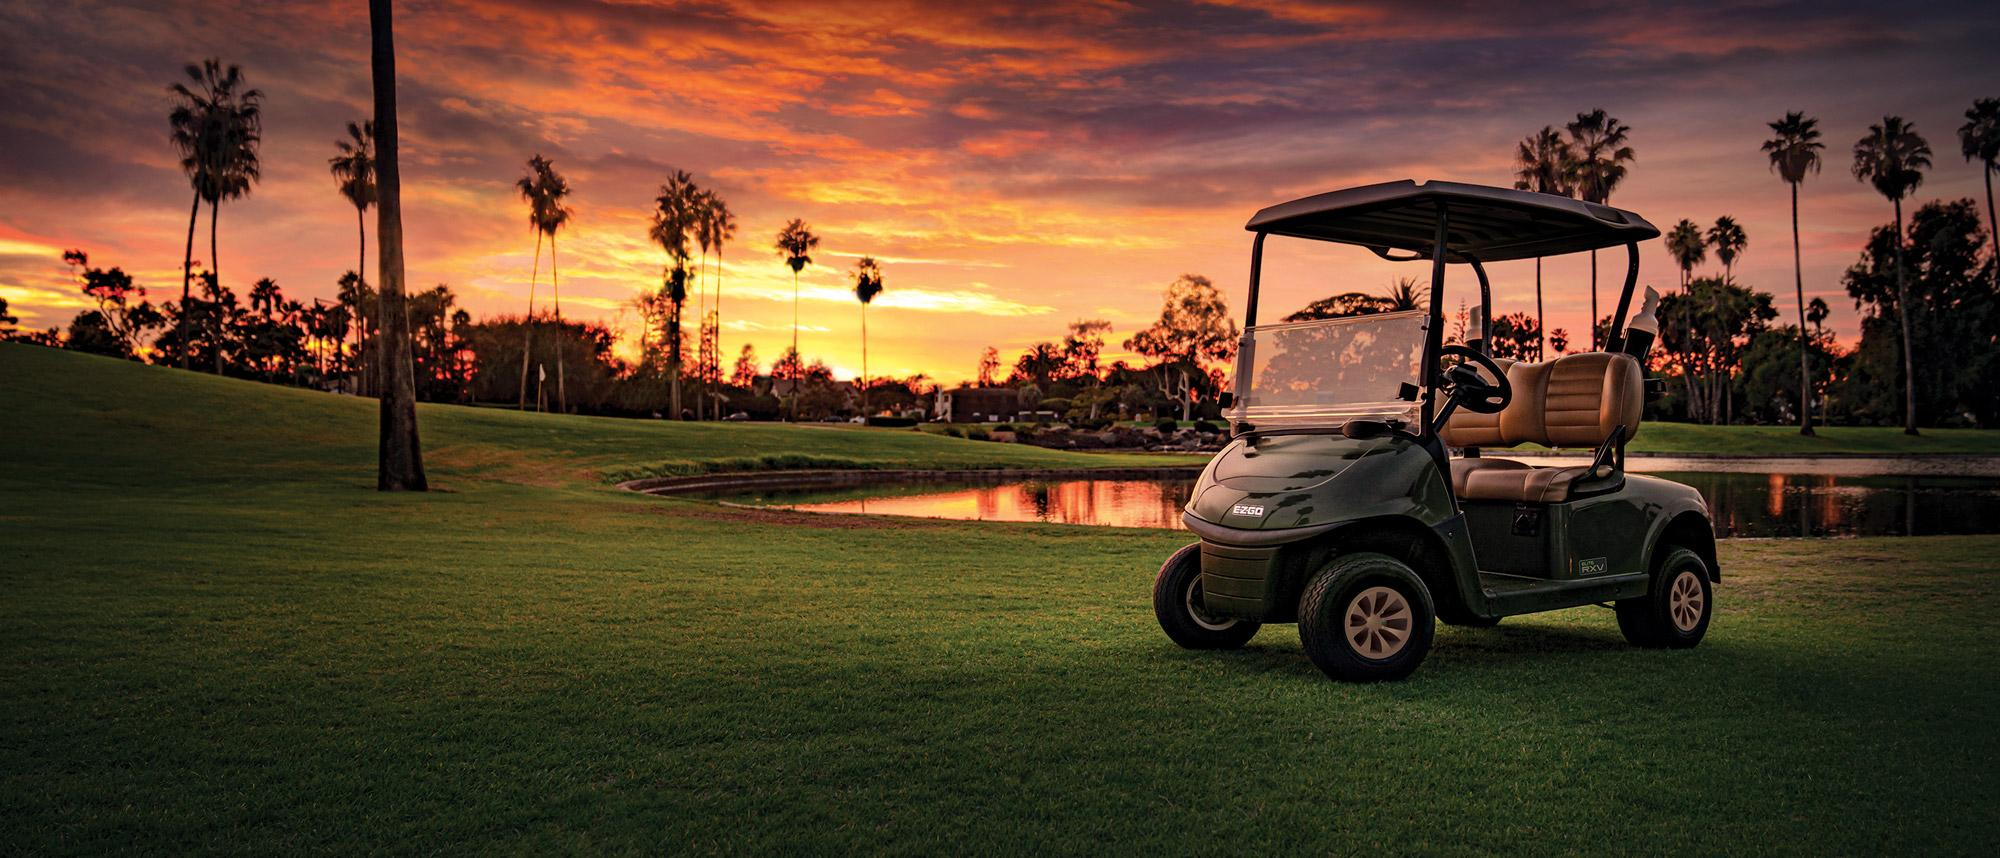 Golf cart sitting still on a golf course in the sunset